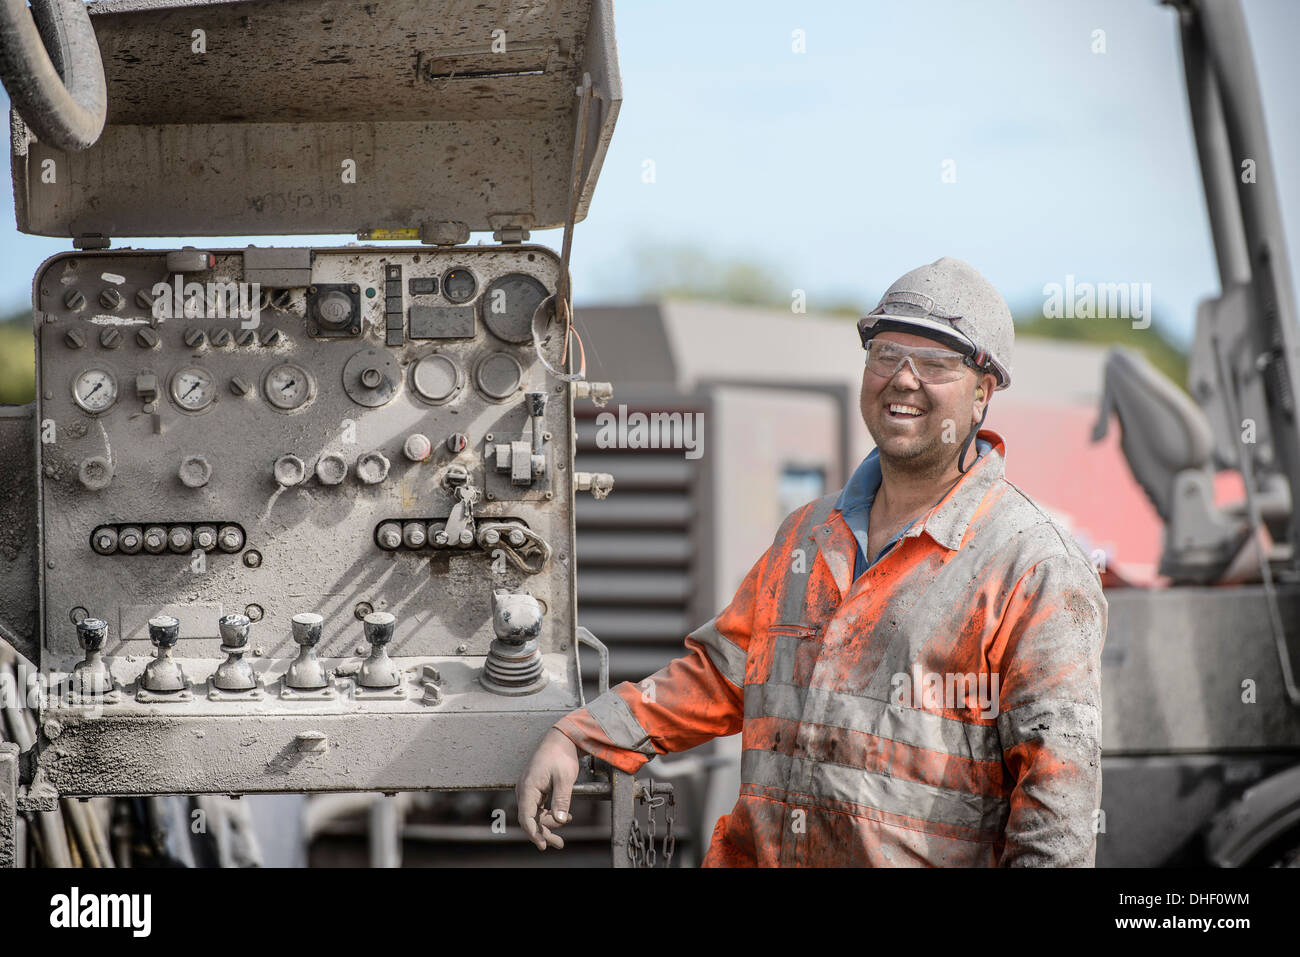 Drilling Rig worker in hard hat et workwear, smiling Photo Stock